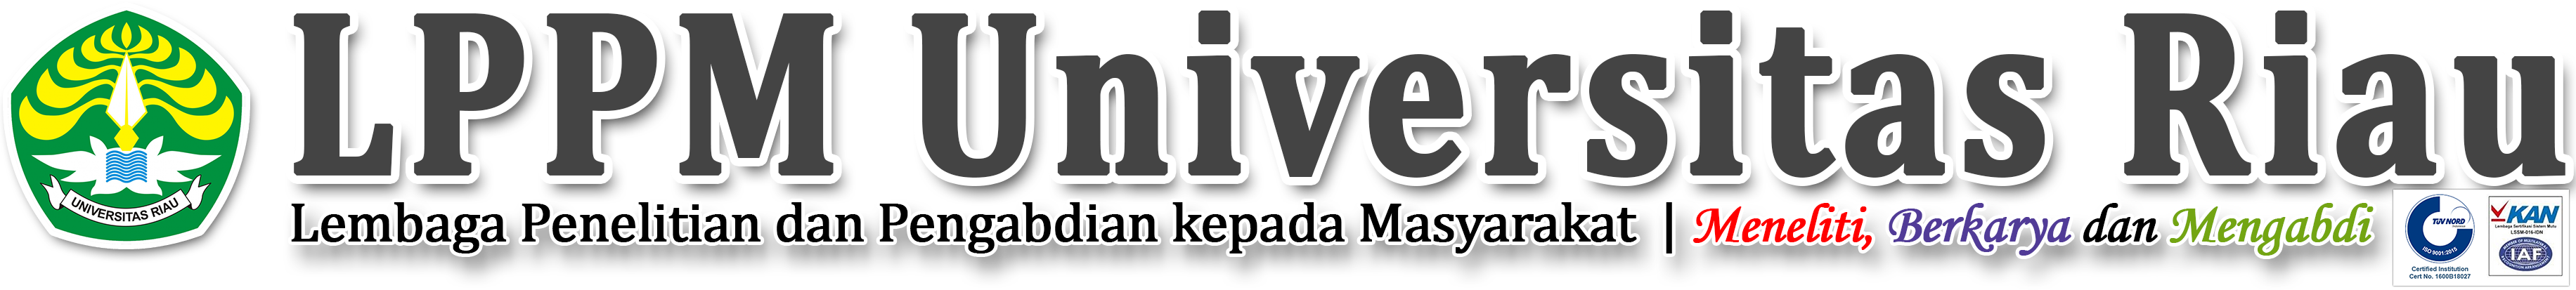 Jurnal Lppm Universitas Riau